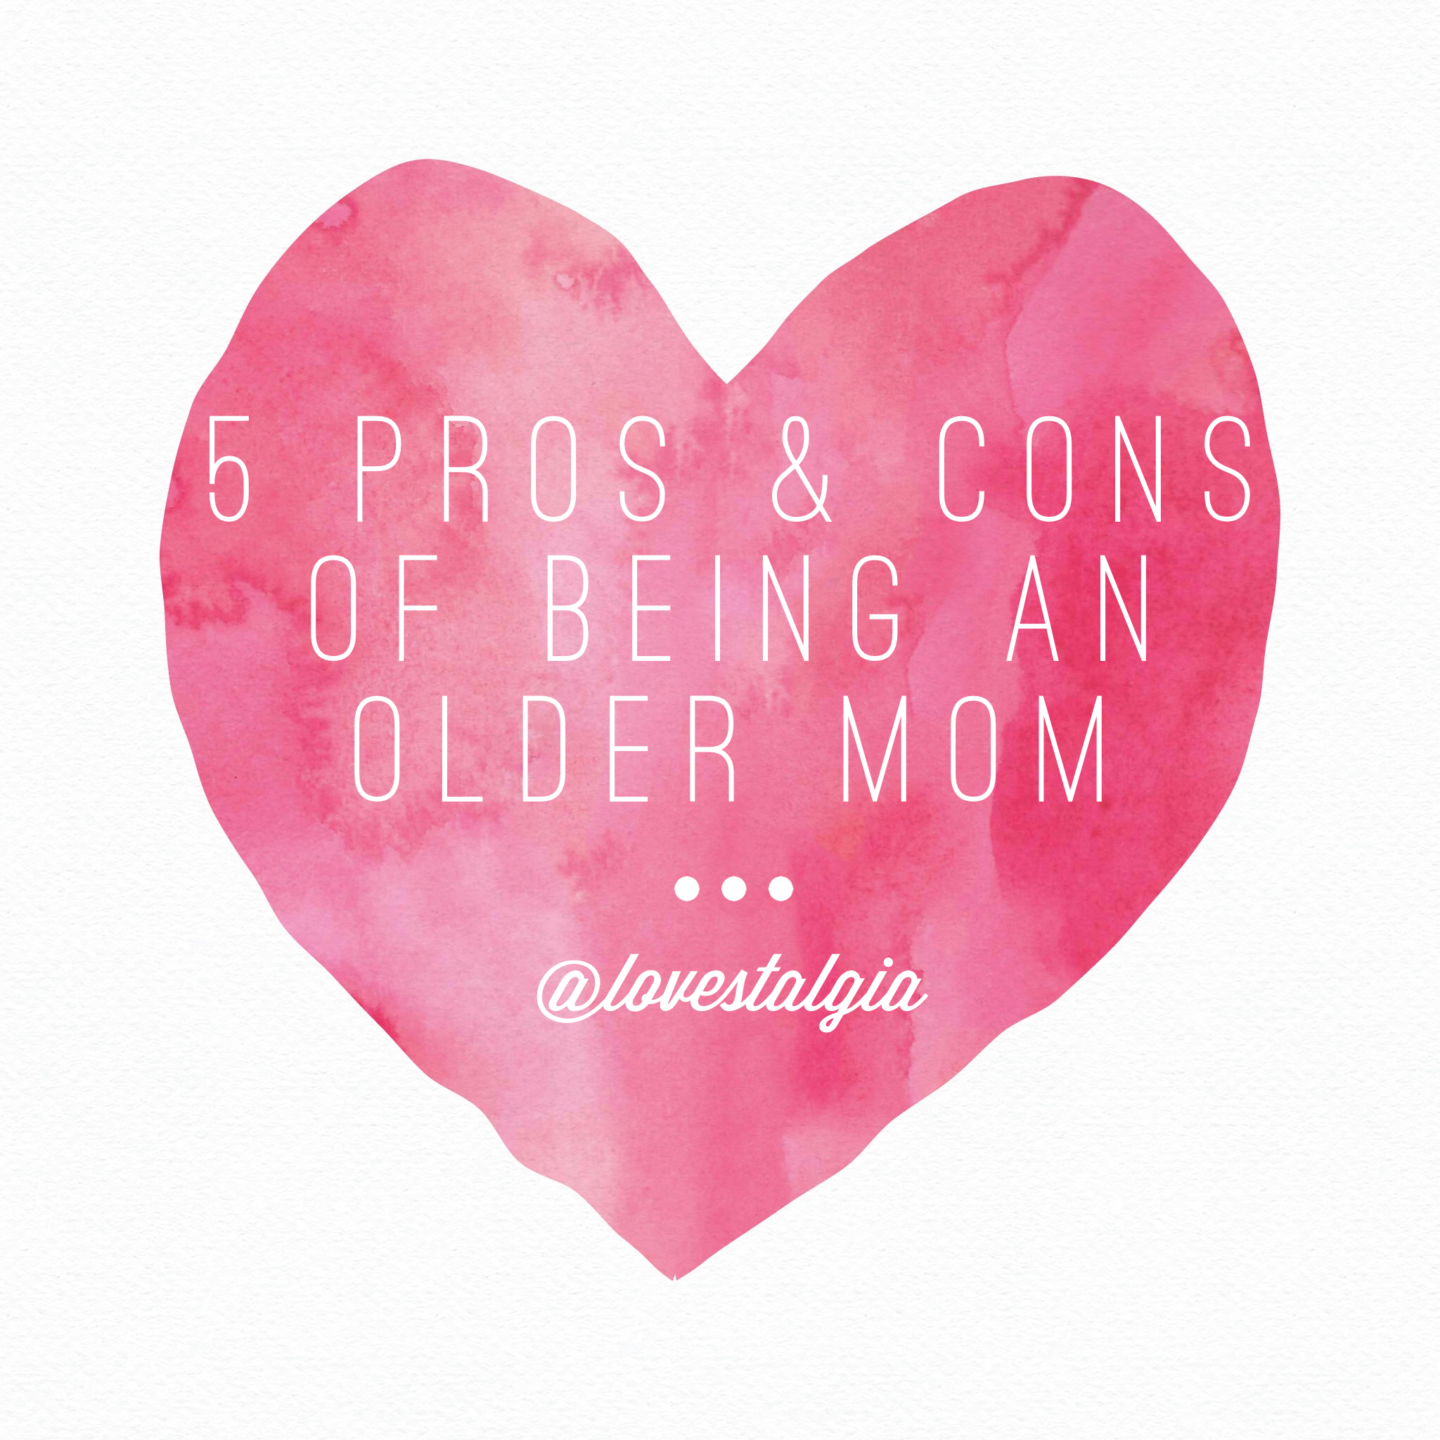 5 Pros & Cons of Being an Older Mom